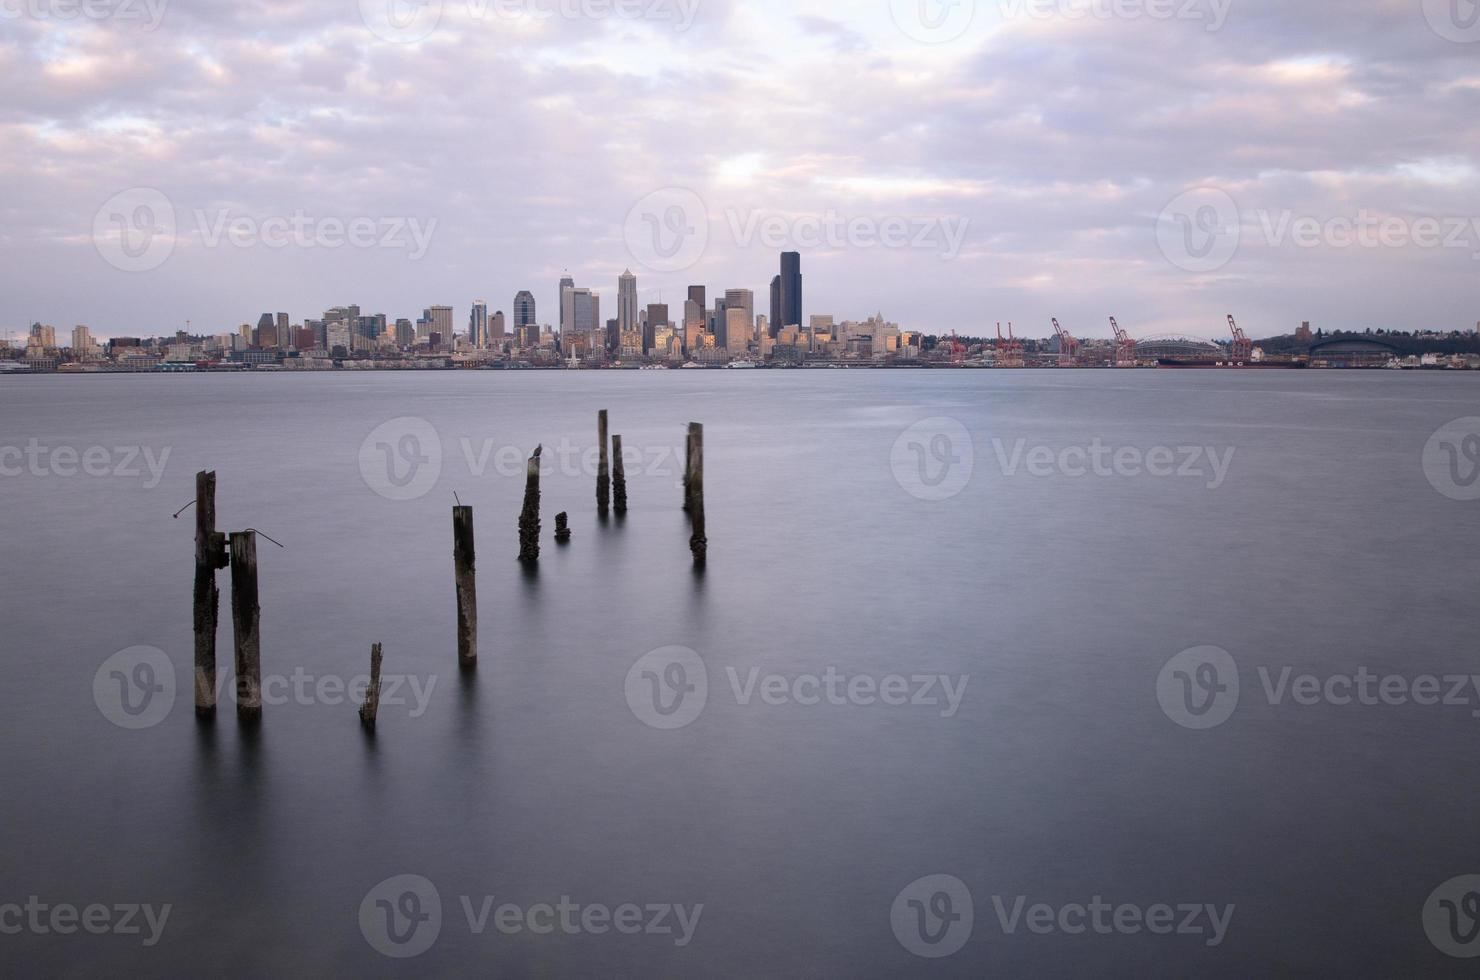 Seattle from the West photo